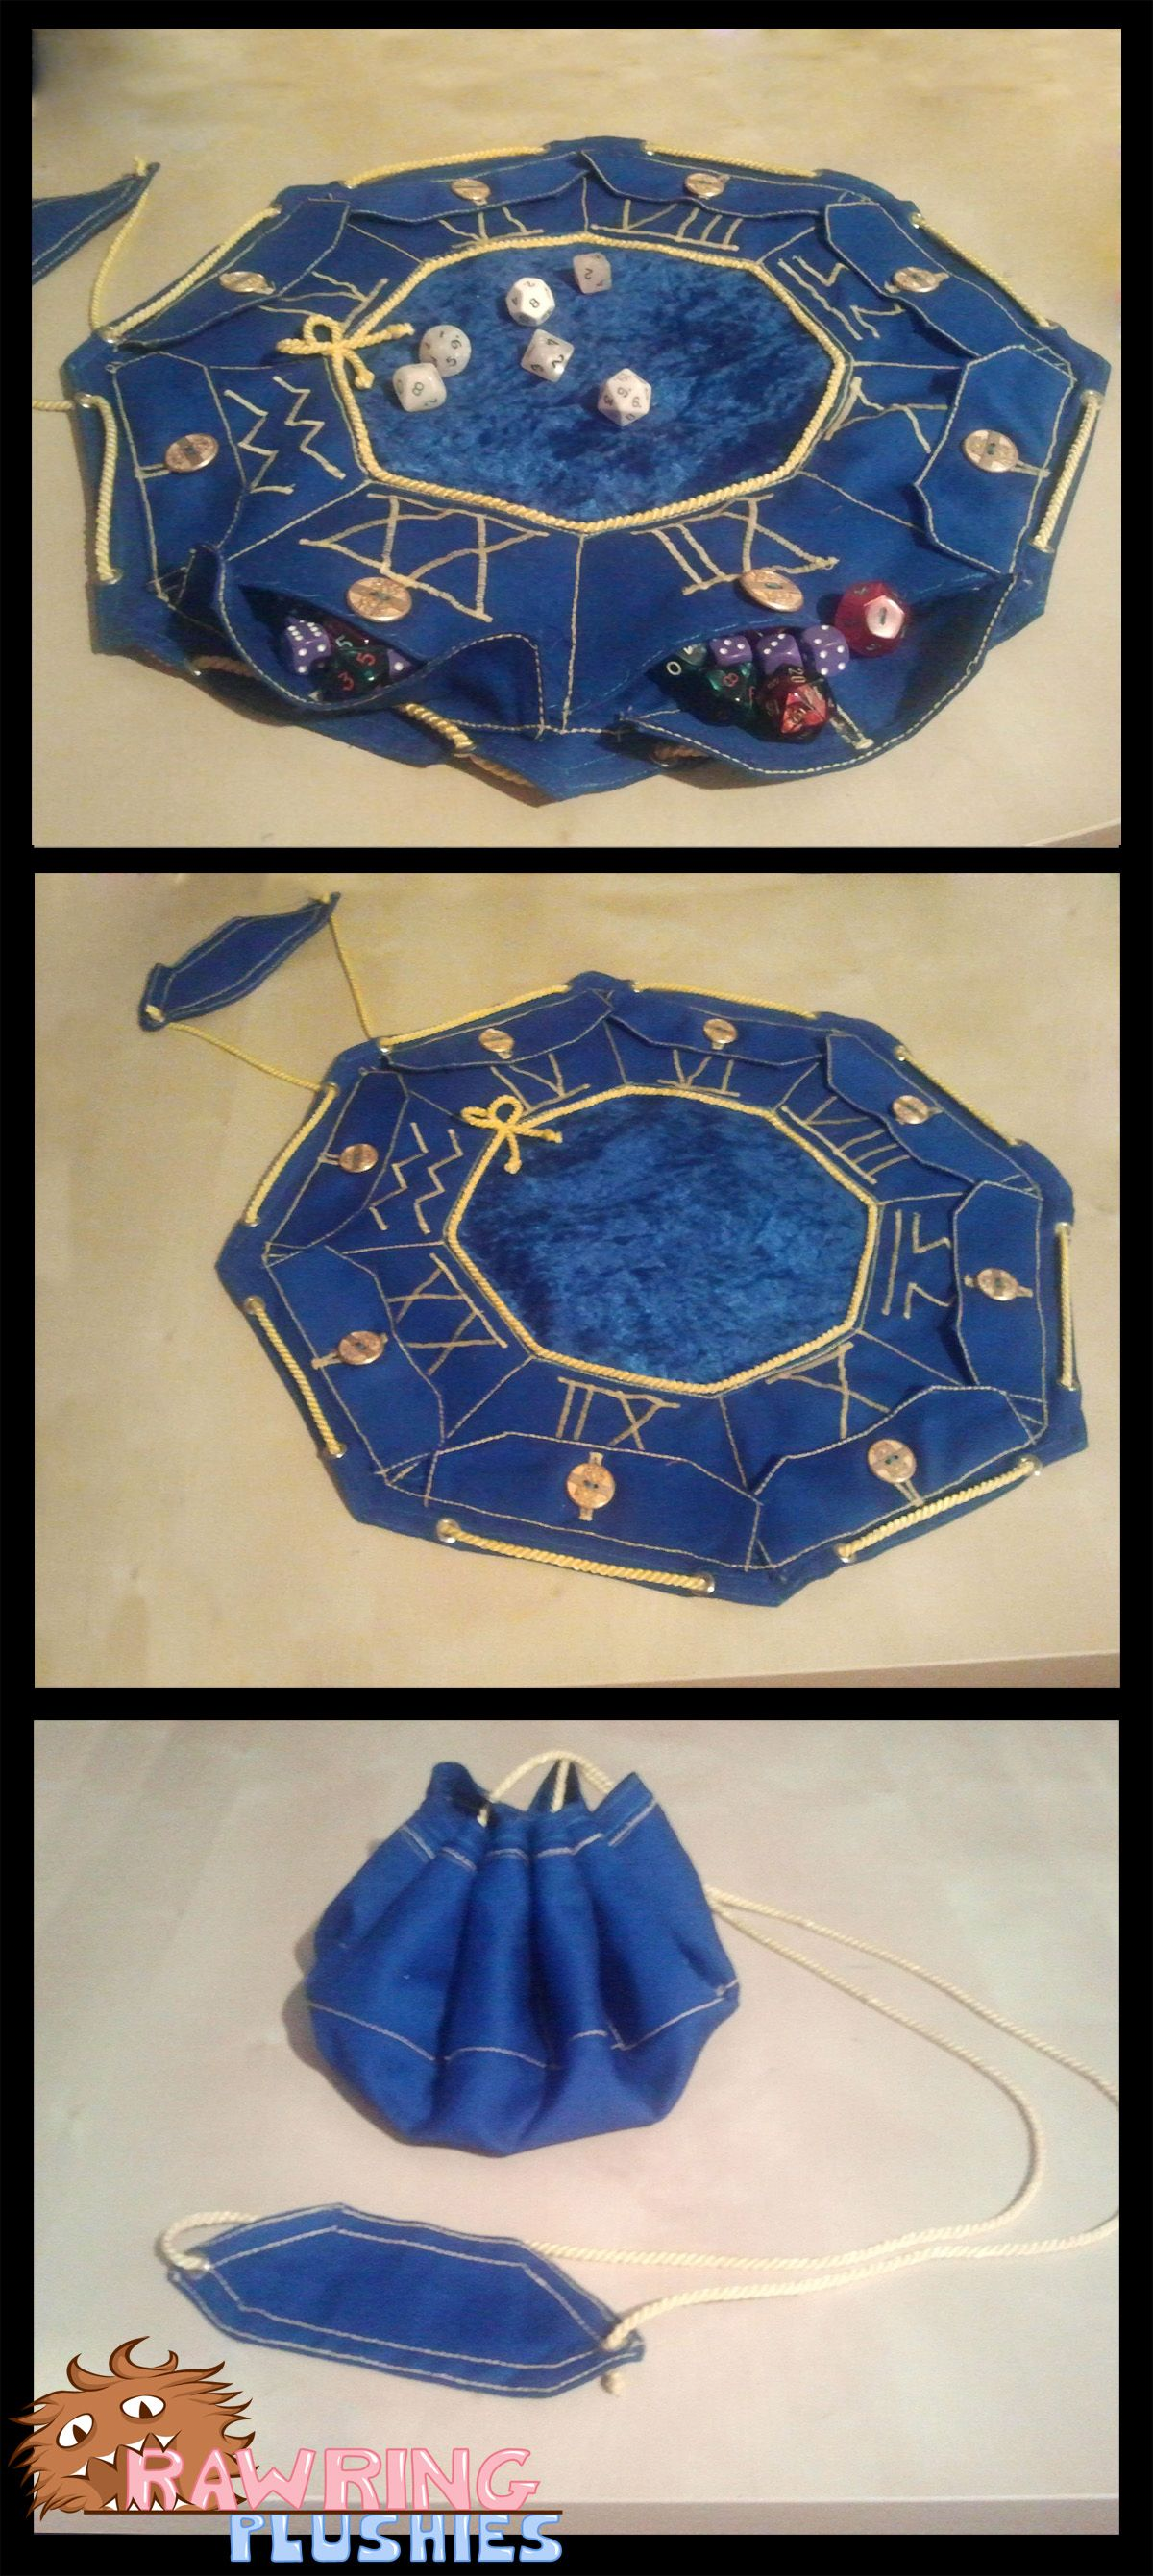 The Wizard's Pouch by RawringCrafts on DeviantArt